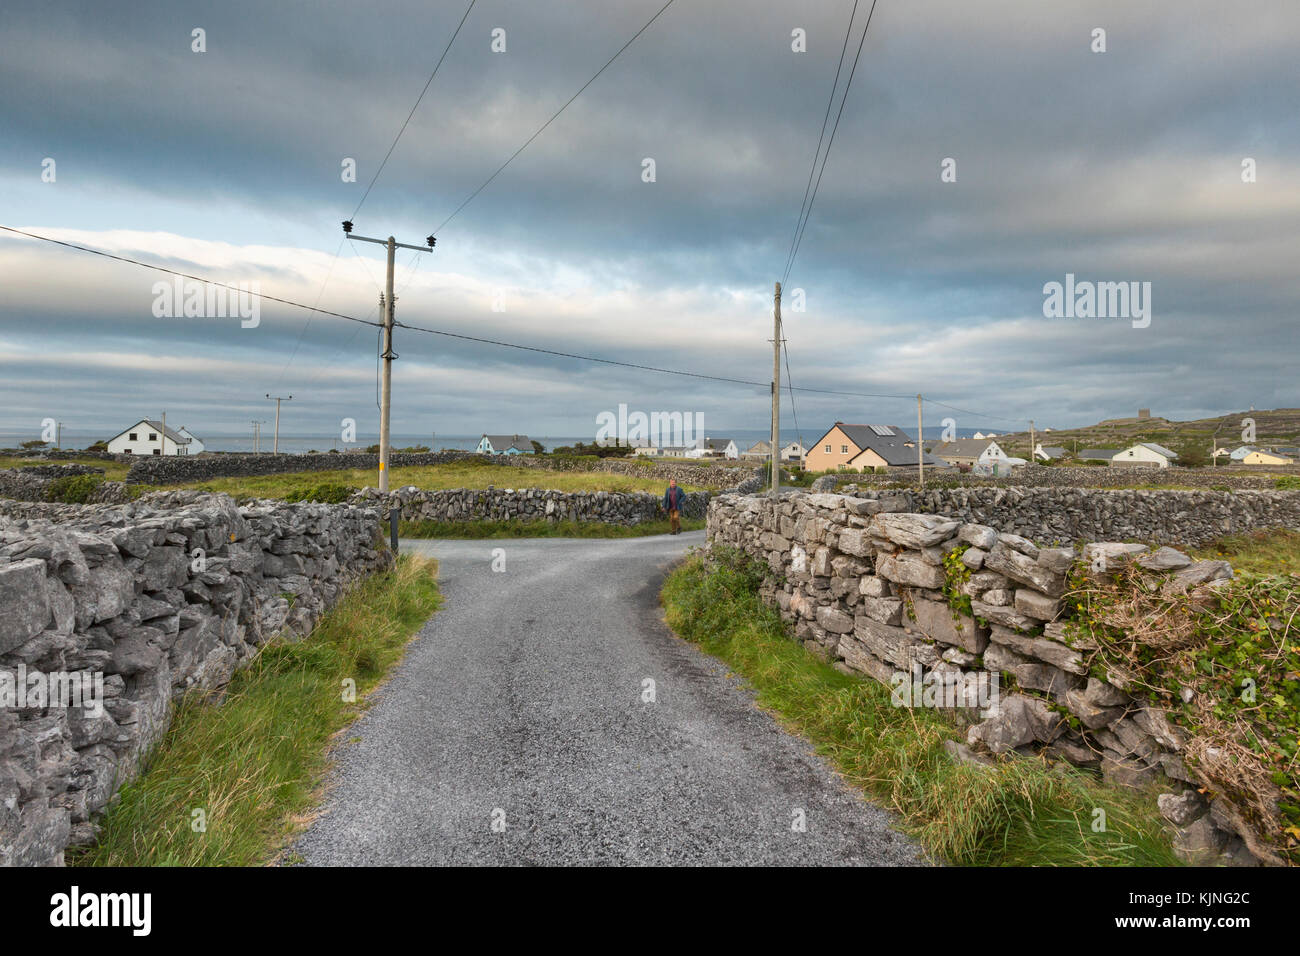 Scenic Landscape of Inis Oírr (Inisheer), one of three islands in the Aran Islands, County Galway, Ireland. - Stock Image